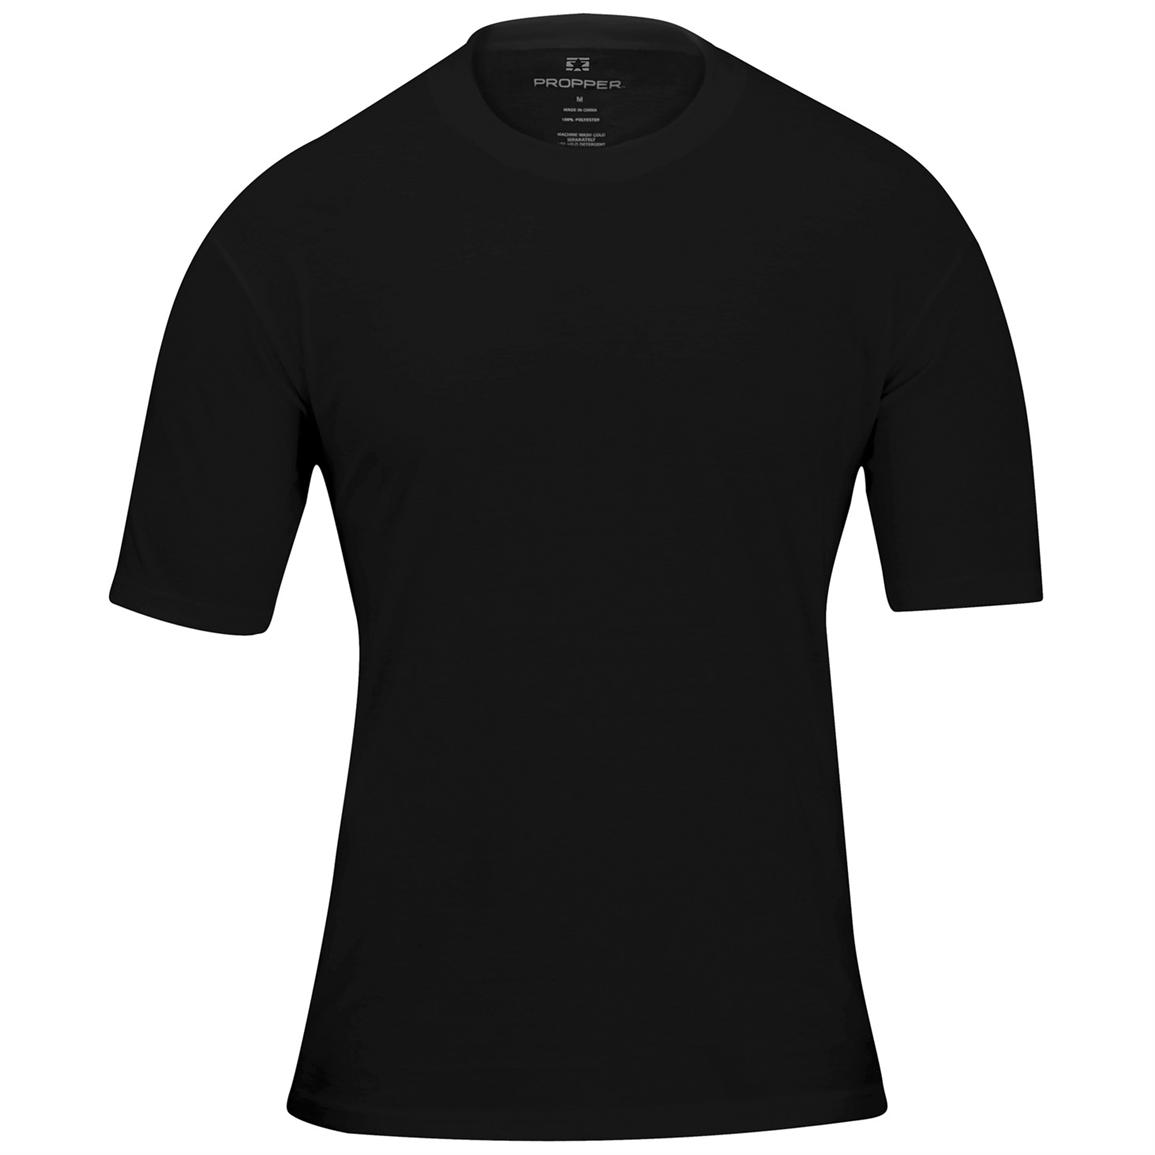 3-Pk. Men's Propper™ Pack 3™ T-shirts, Black